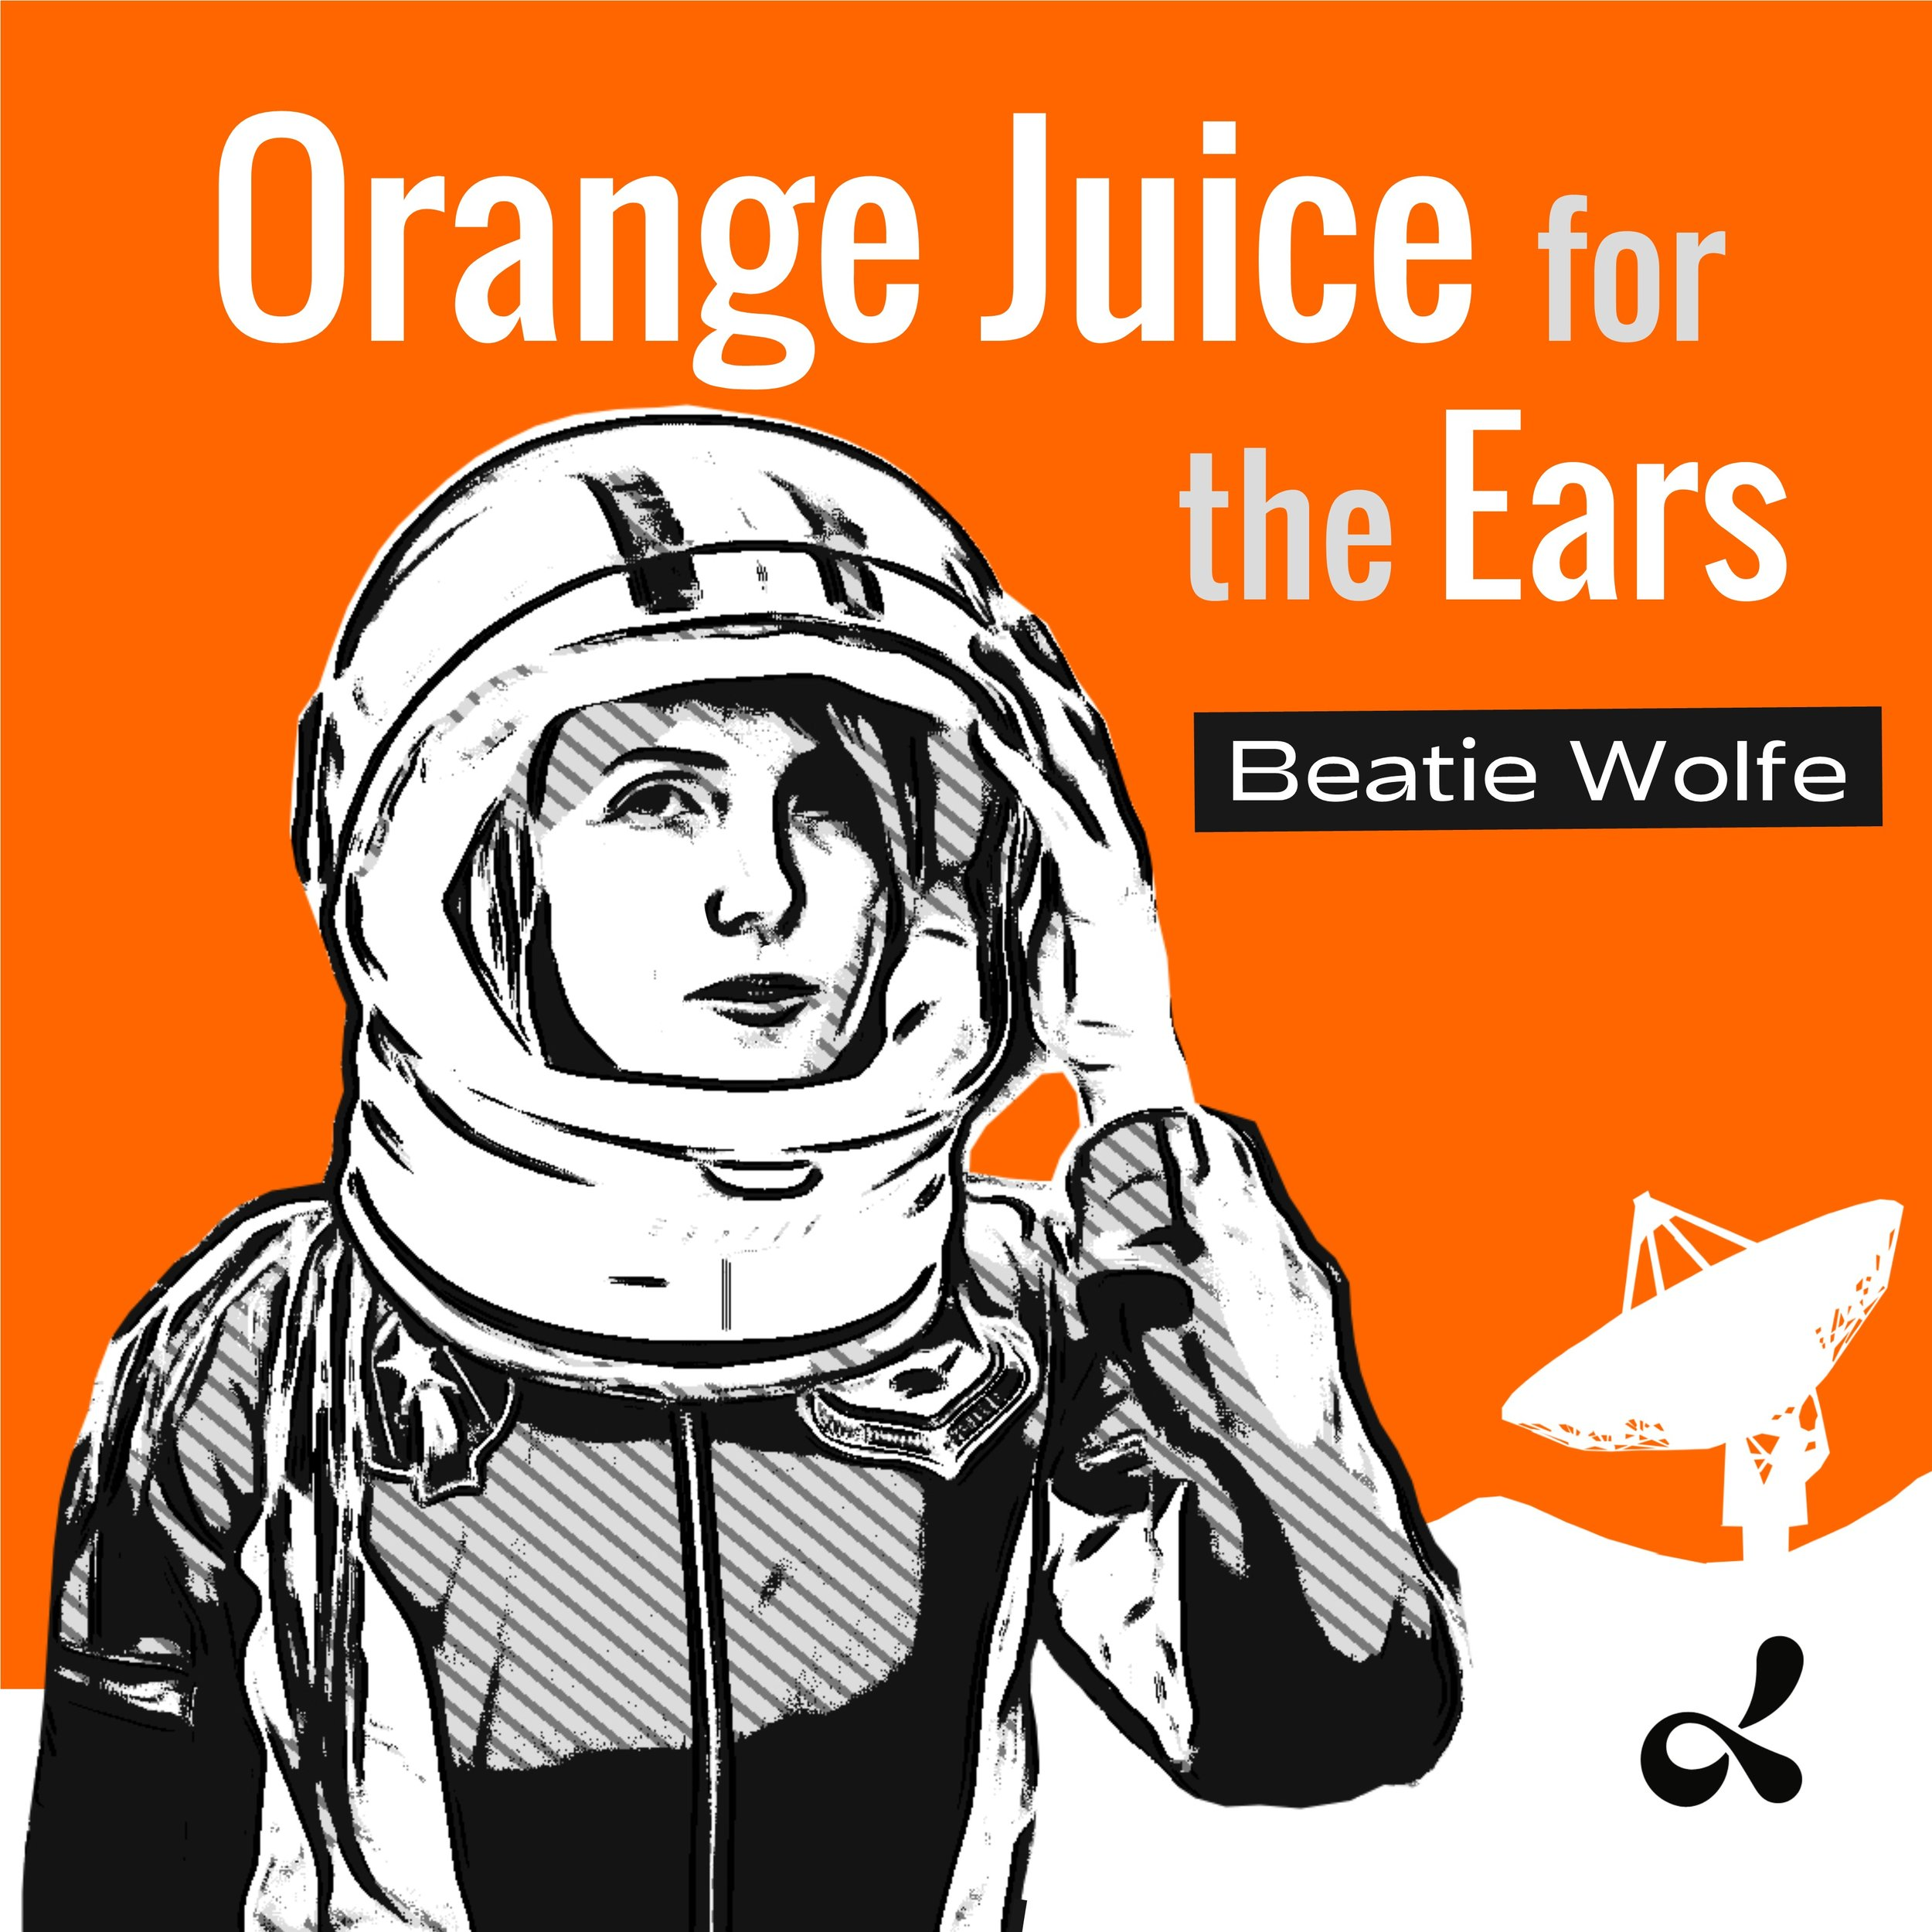 Orange Juice for the Ears with Beatie Wolfe - Program tile for dublabs website - final.jpg